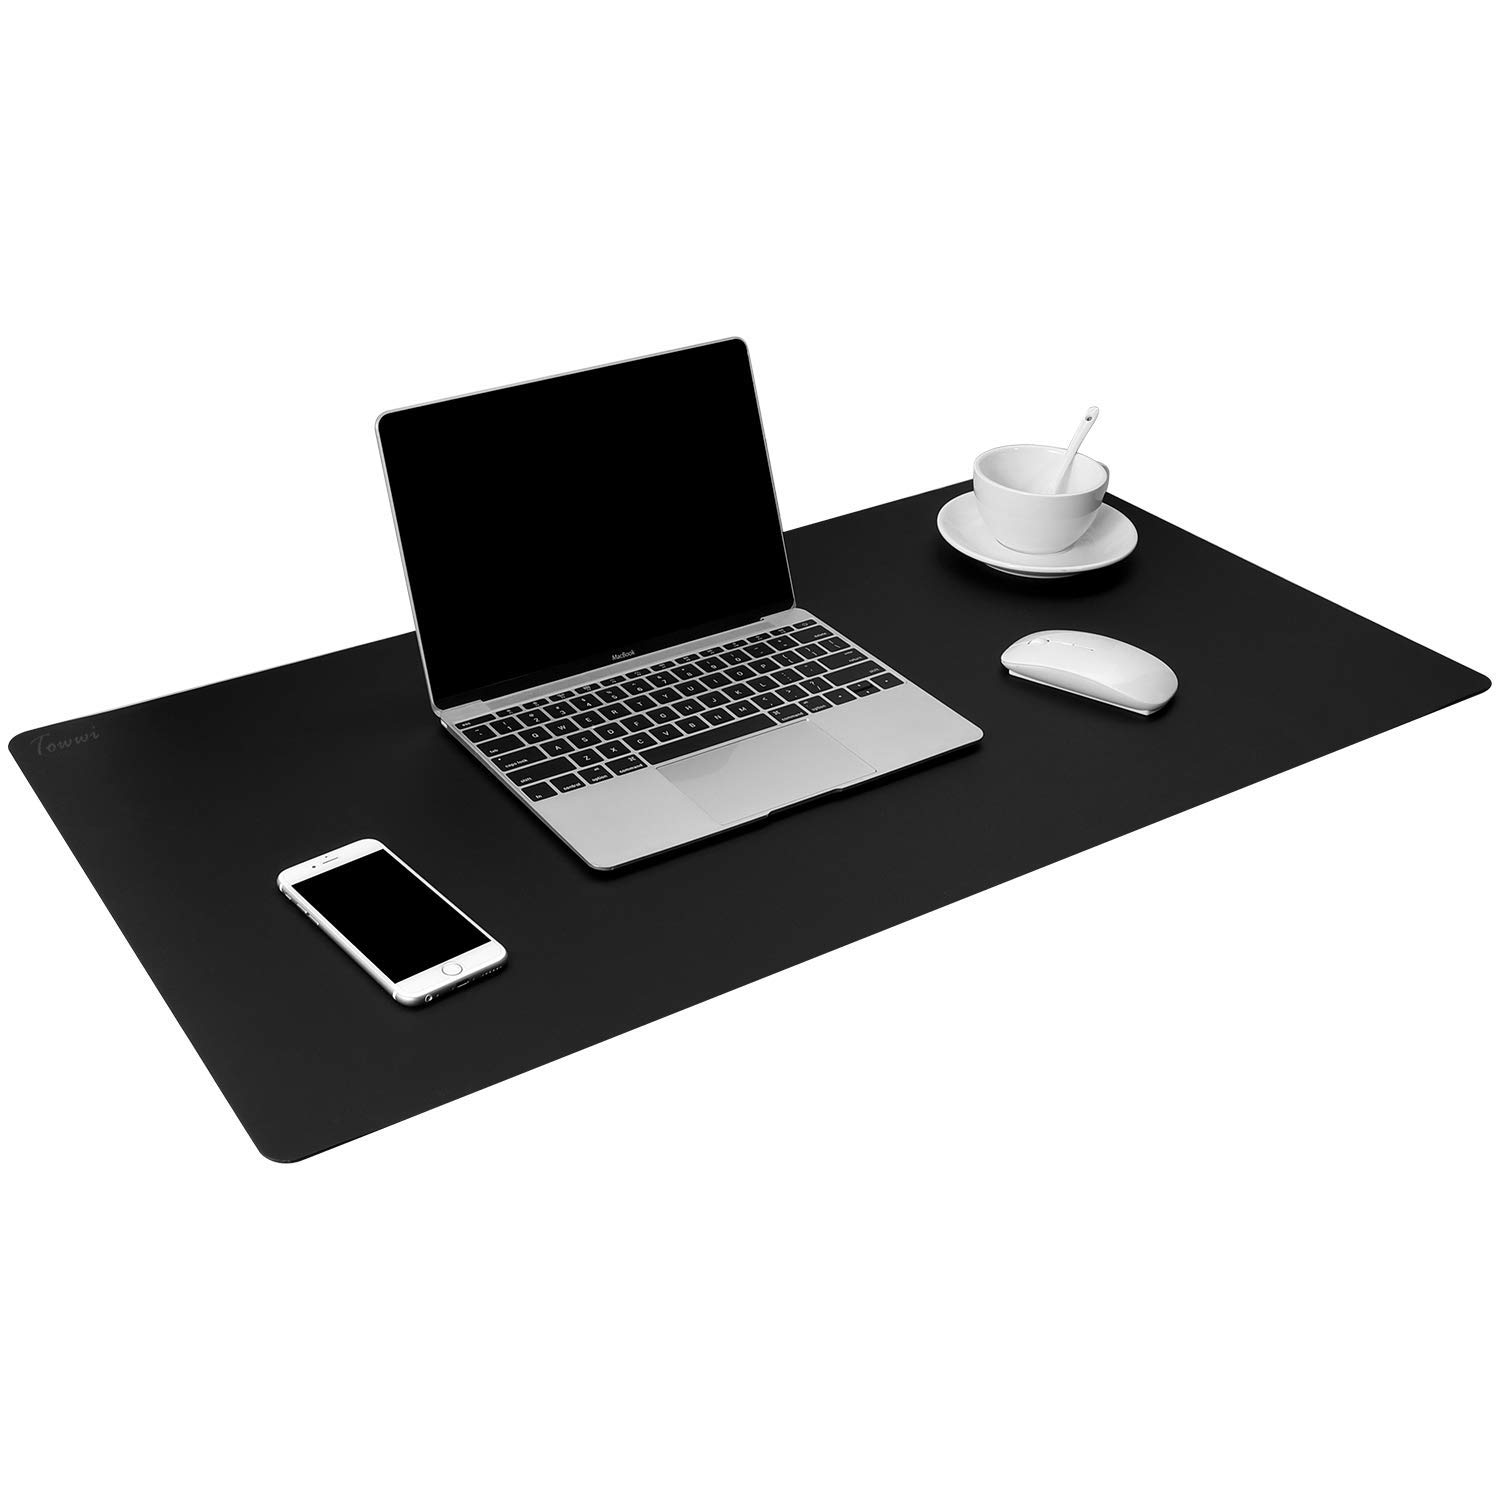 """TOWWI Leather Desk Pad Protector 34""""x17"""" Desk Blotter Pad, Waterproof Writing Desk Mat for Office Home"""